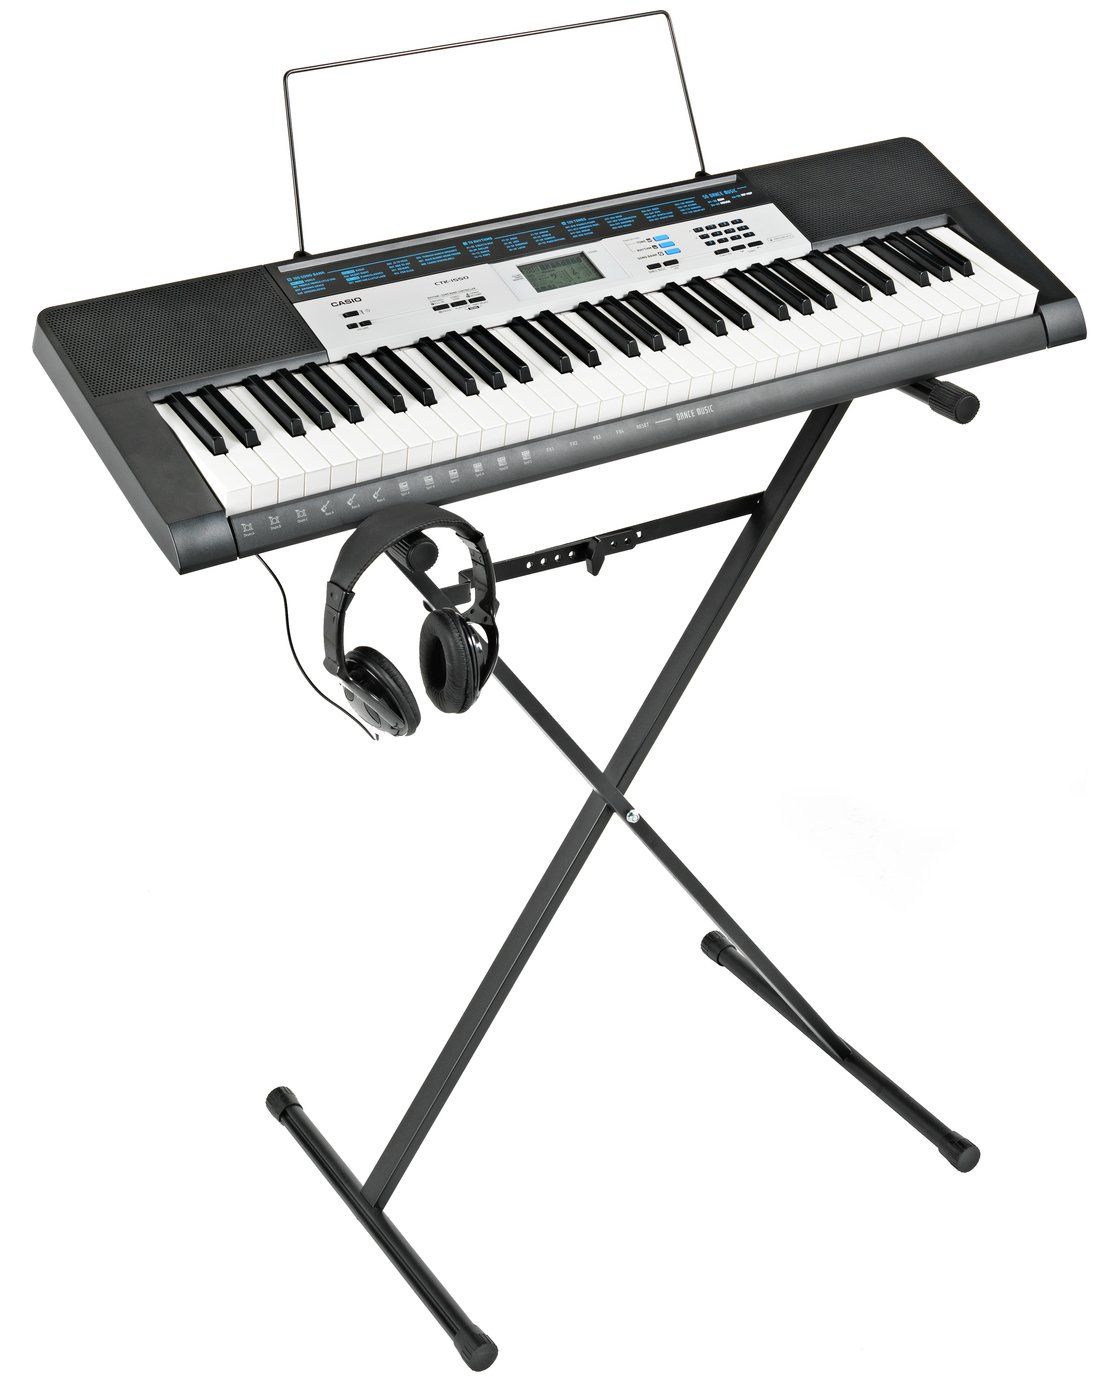 Casio Keyboard, Stand & Headphones Bundle with Free Lessons from Casio